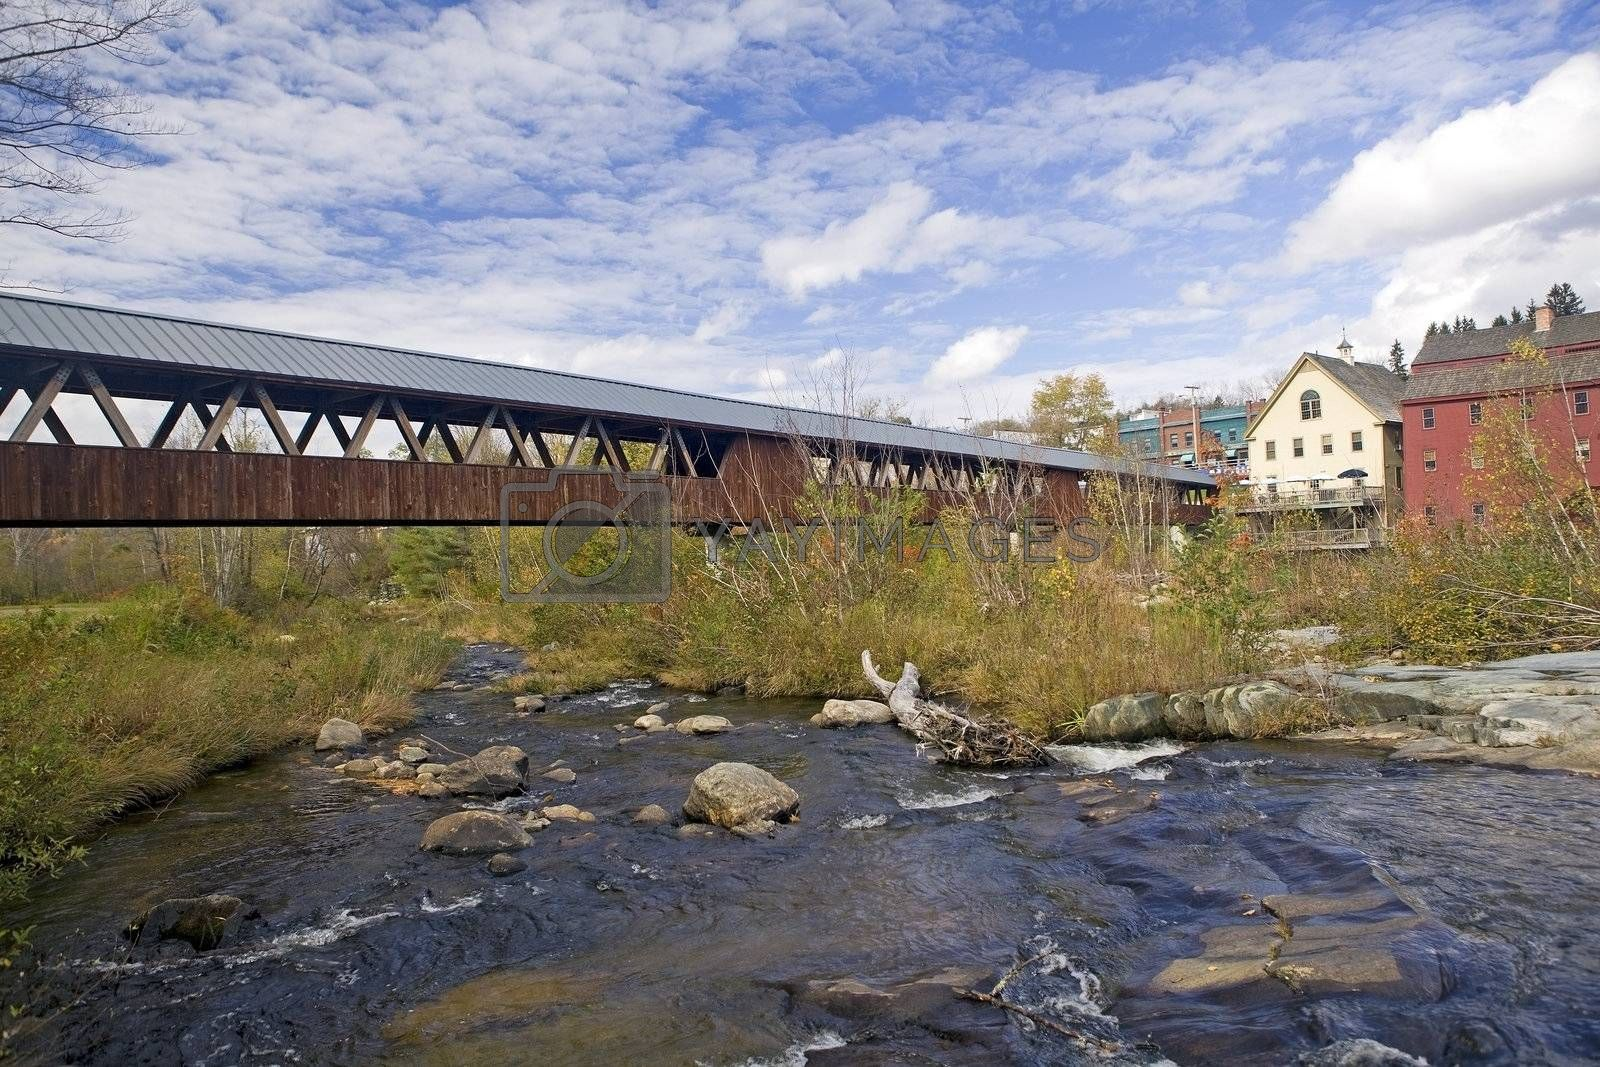 Autumn scenic of the restored wooden covered bridge over the Ammonoosuc River In Littleton, New Hampshire.